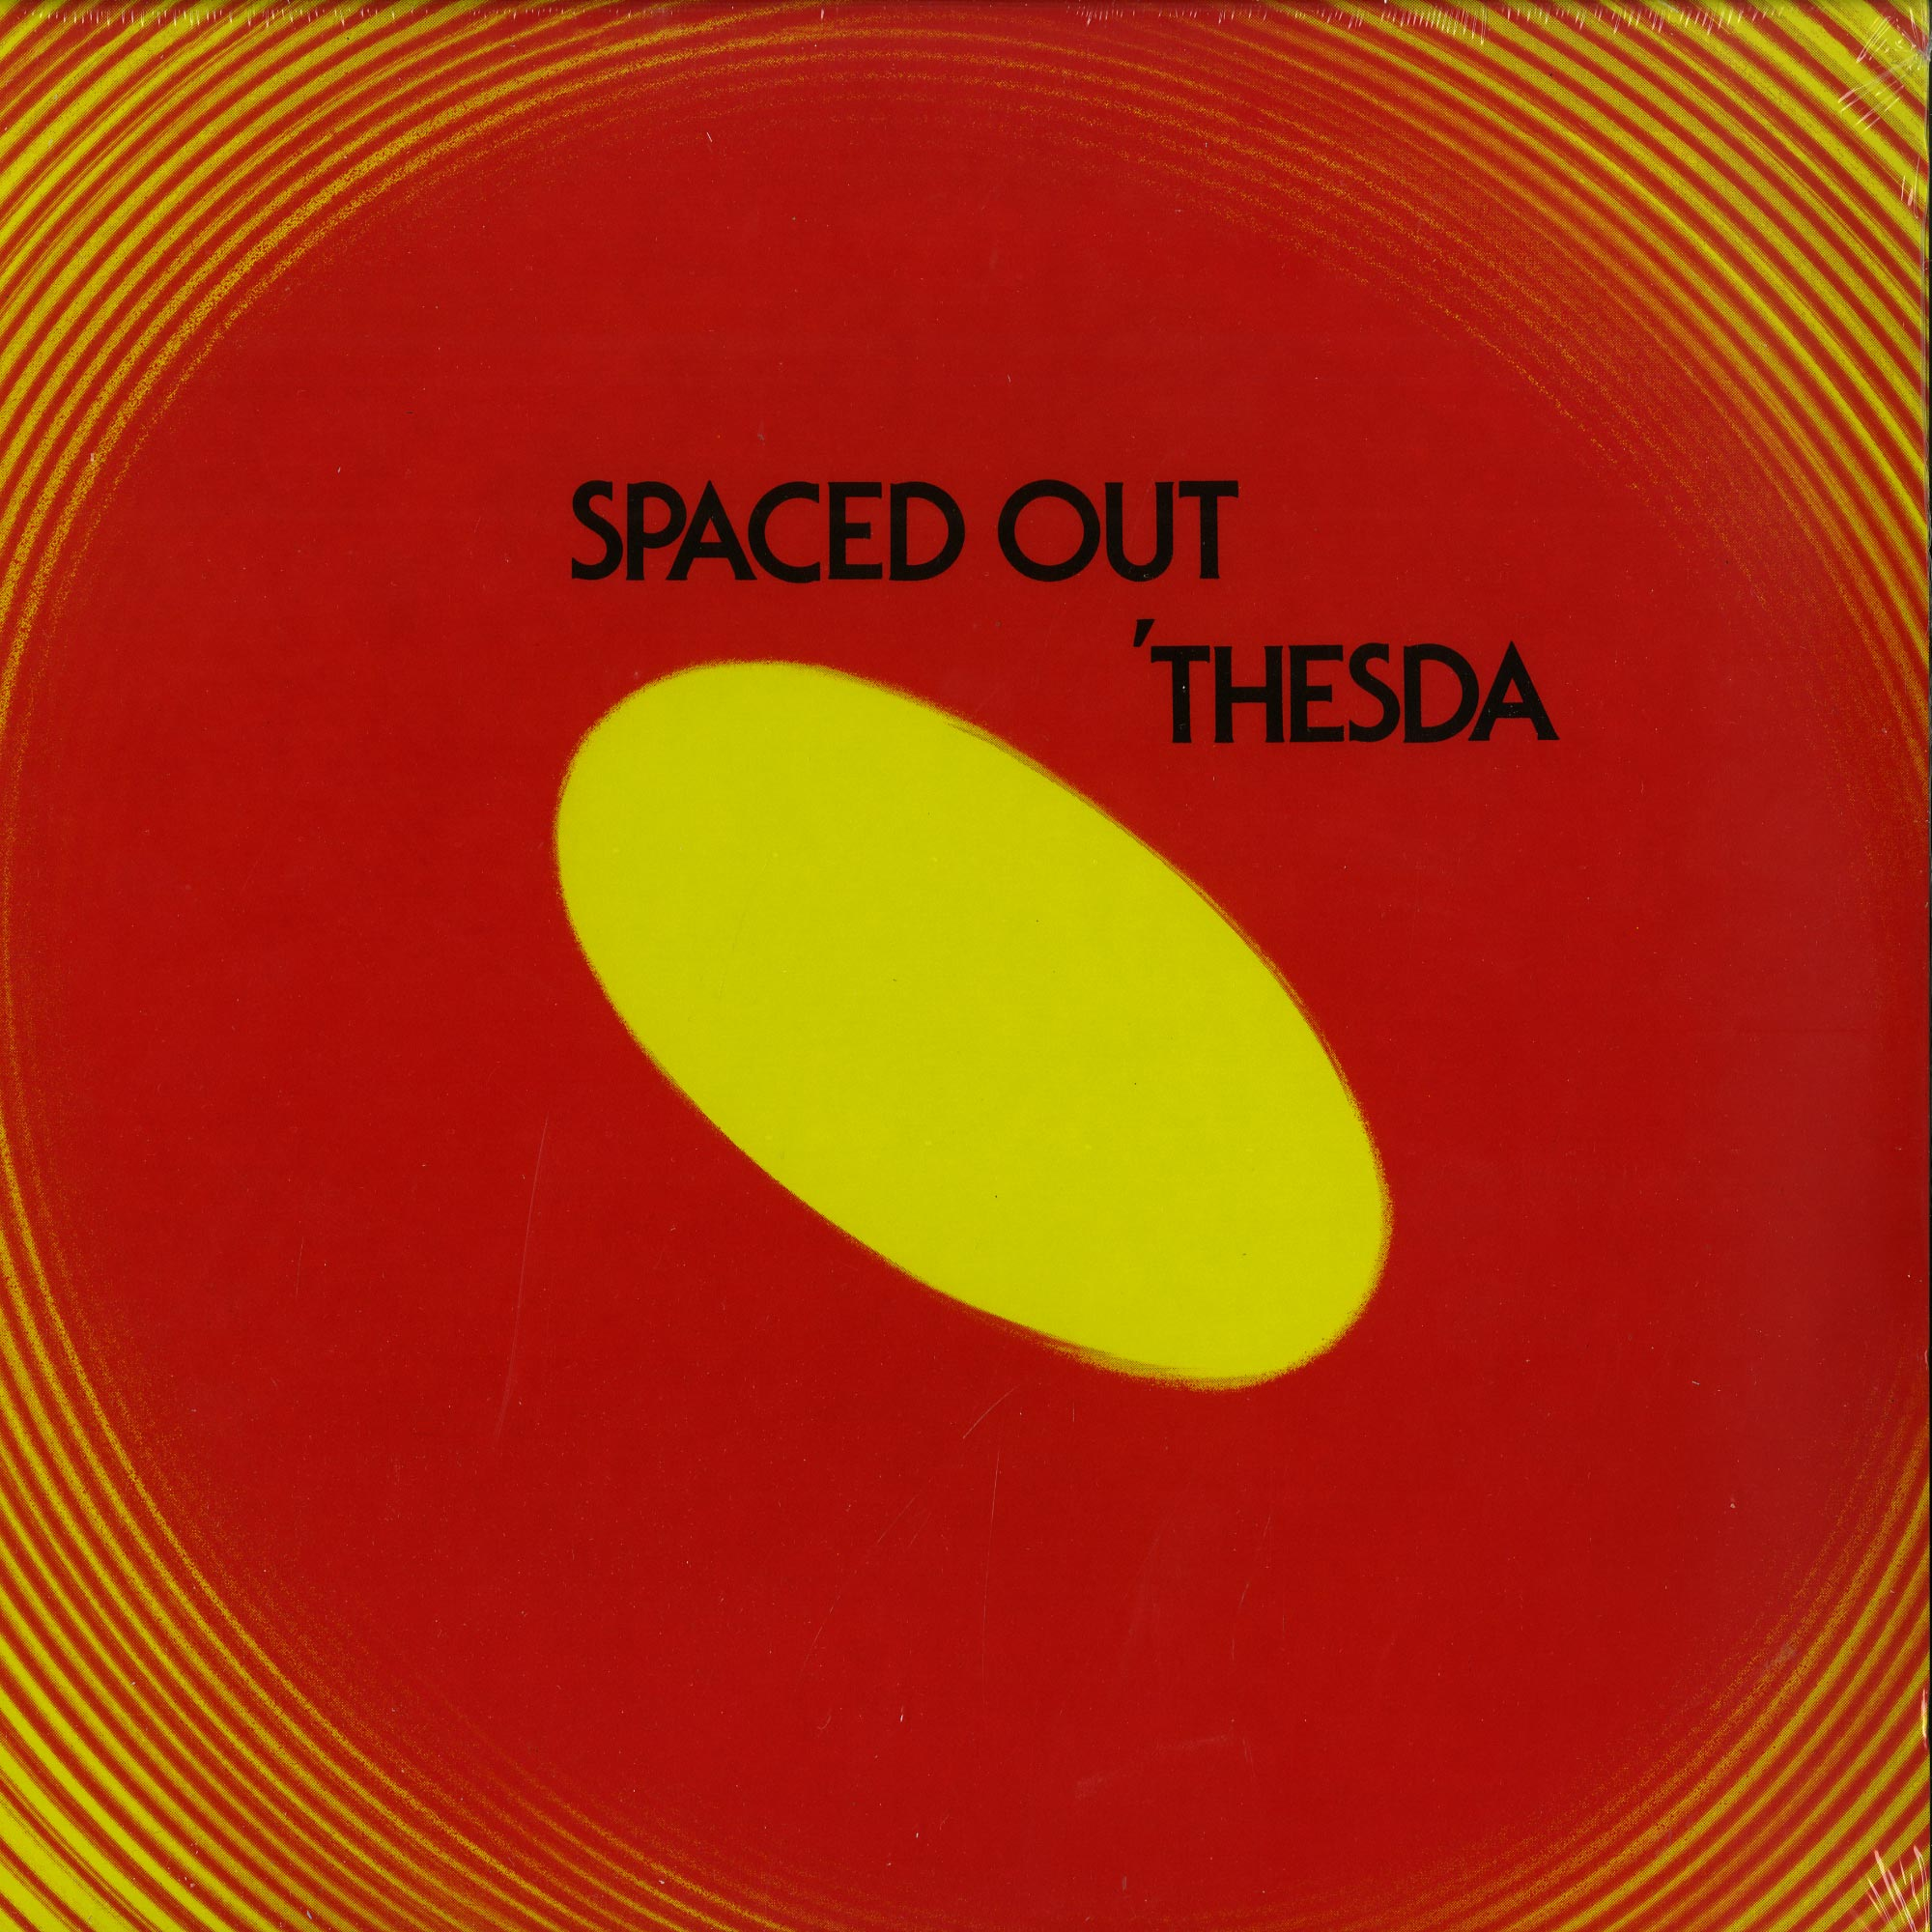 Thesda - SPACED OUT